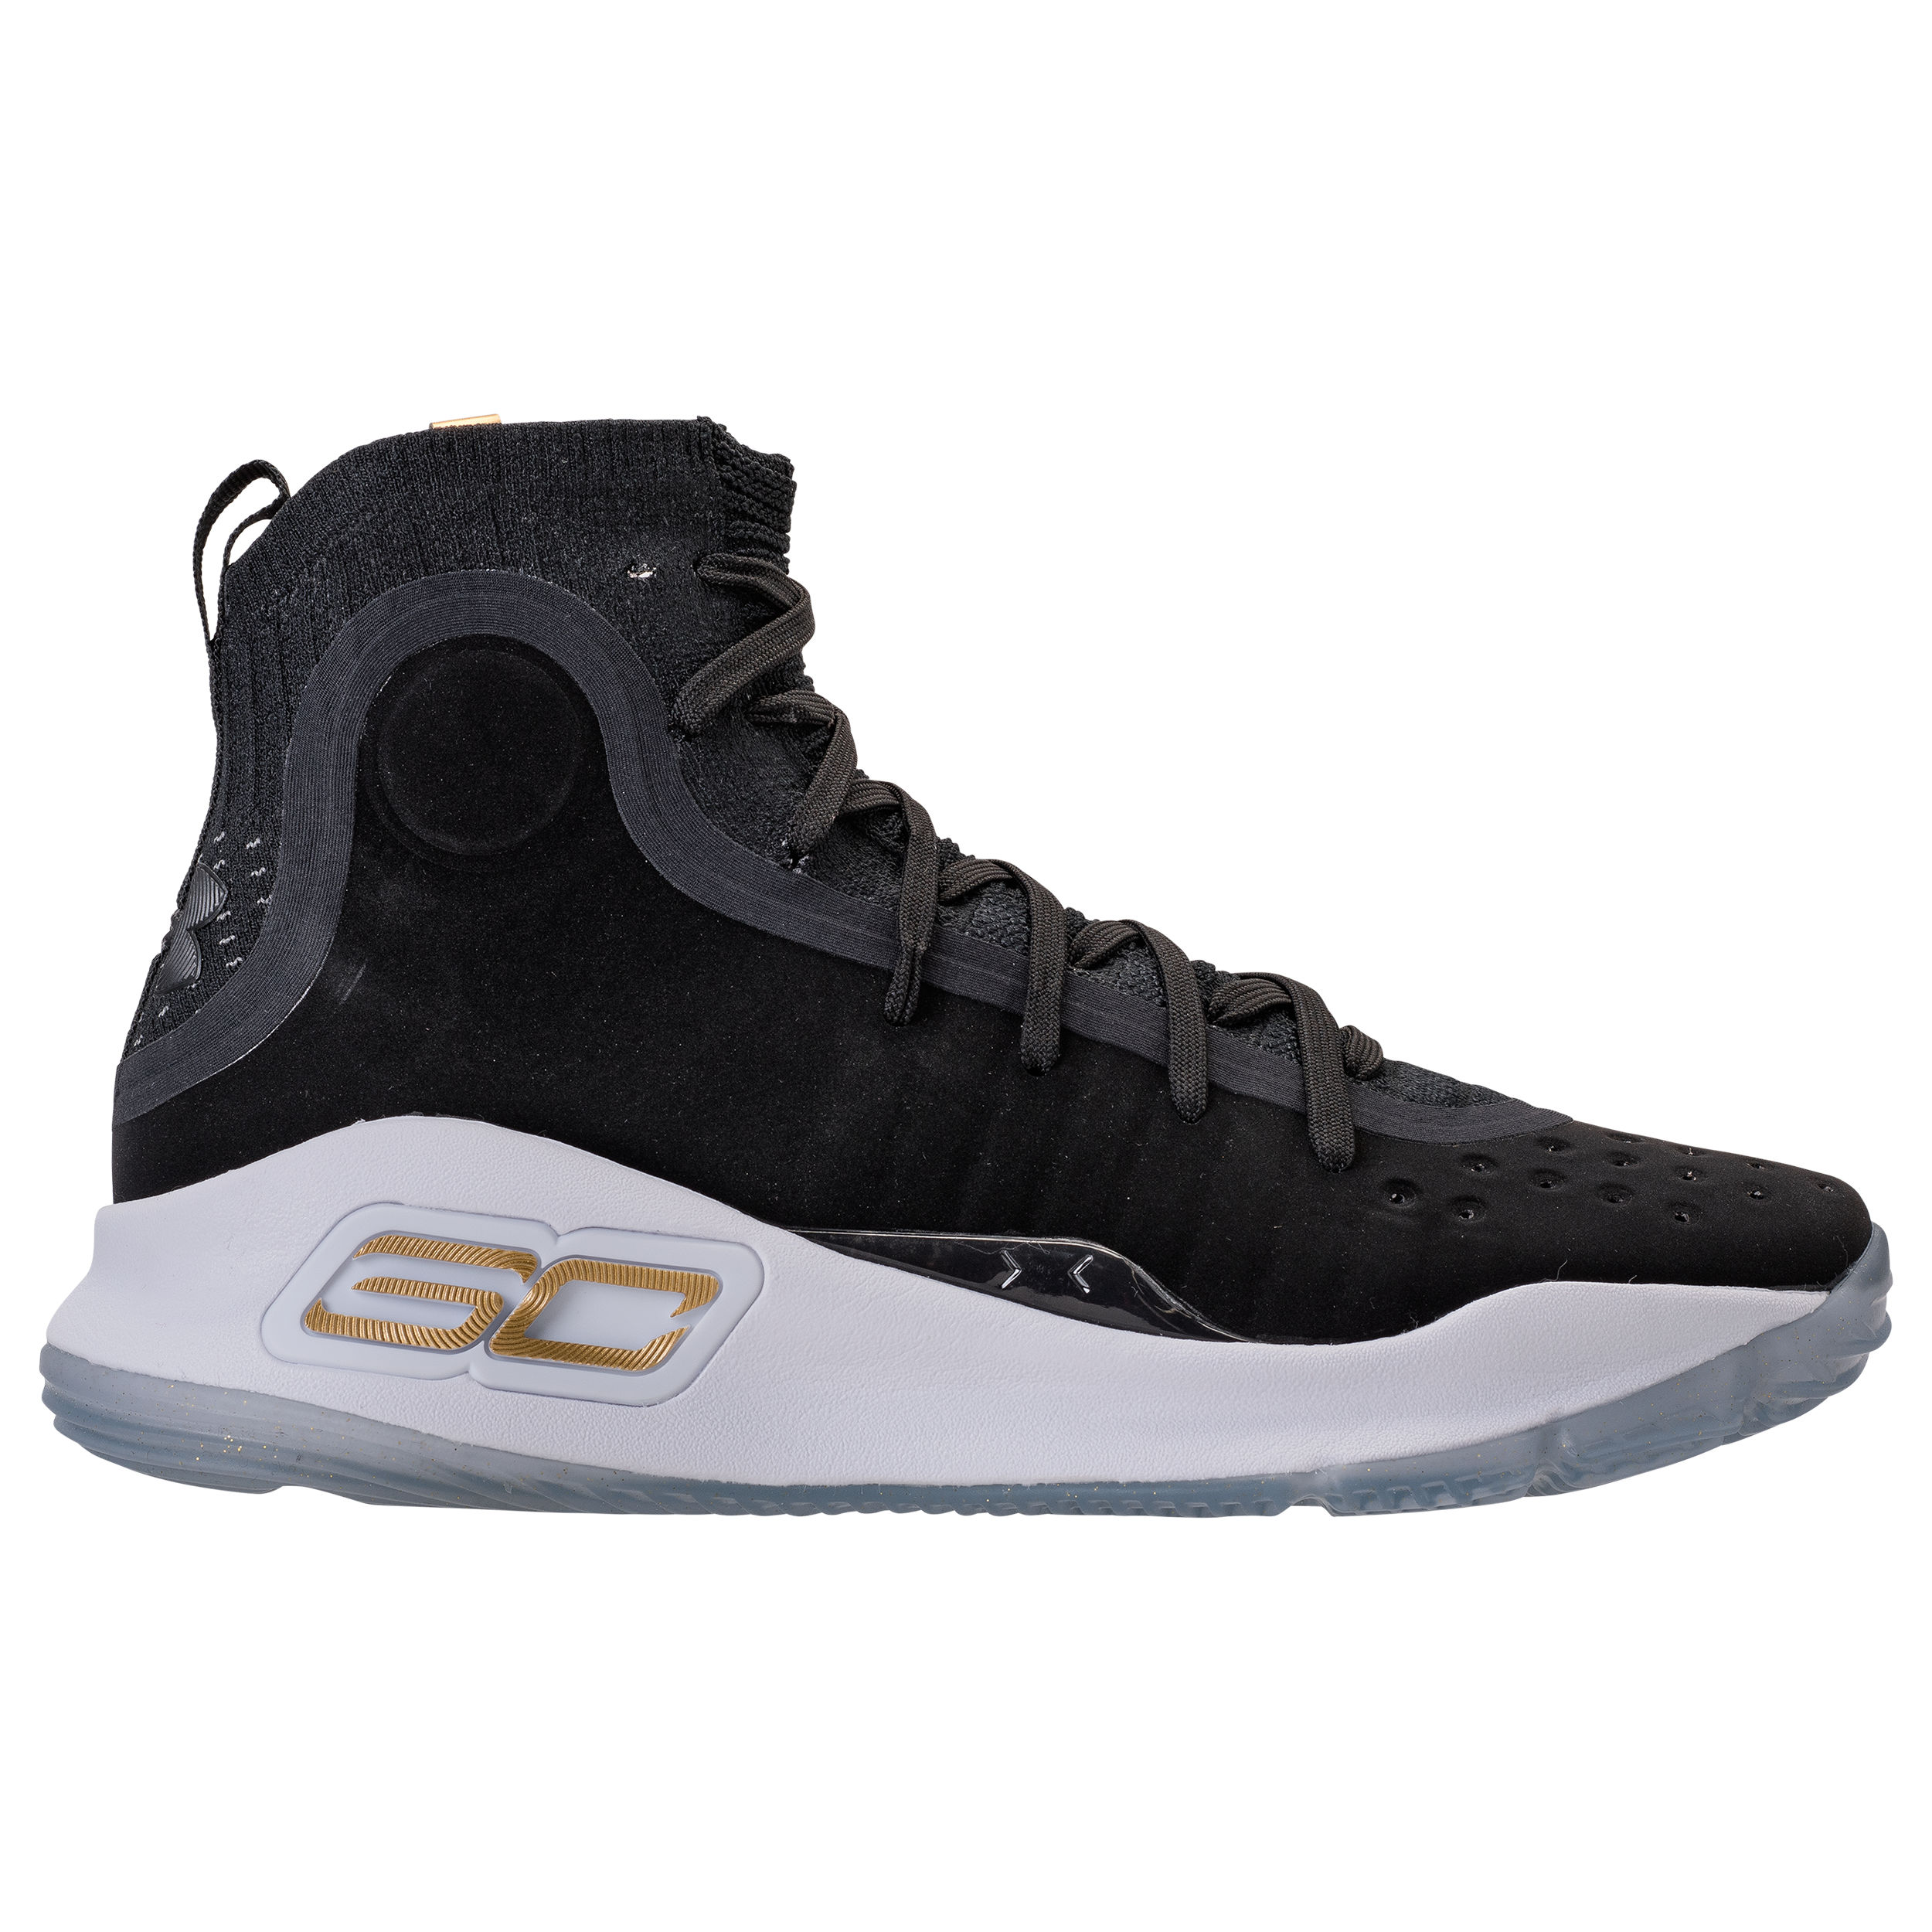 Under armour curry 4 black gold 2